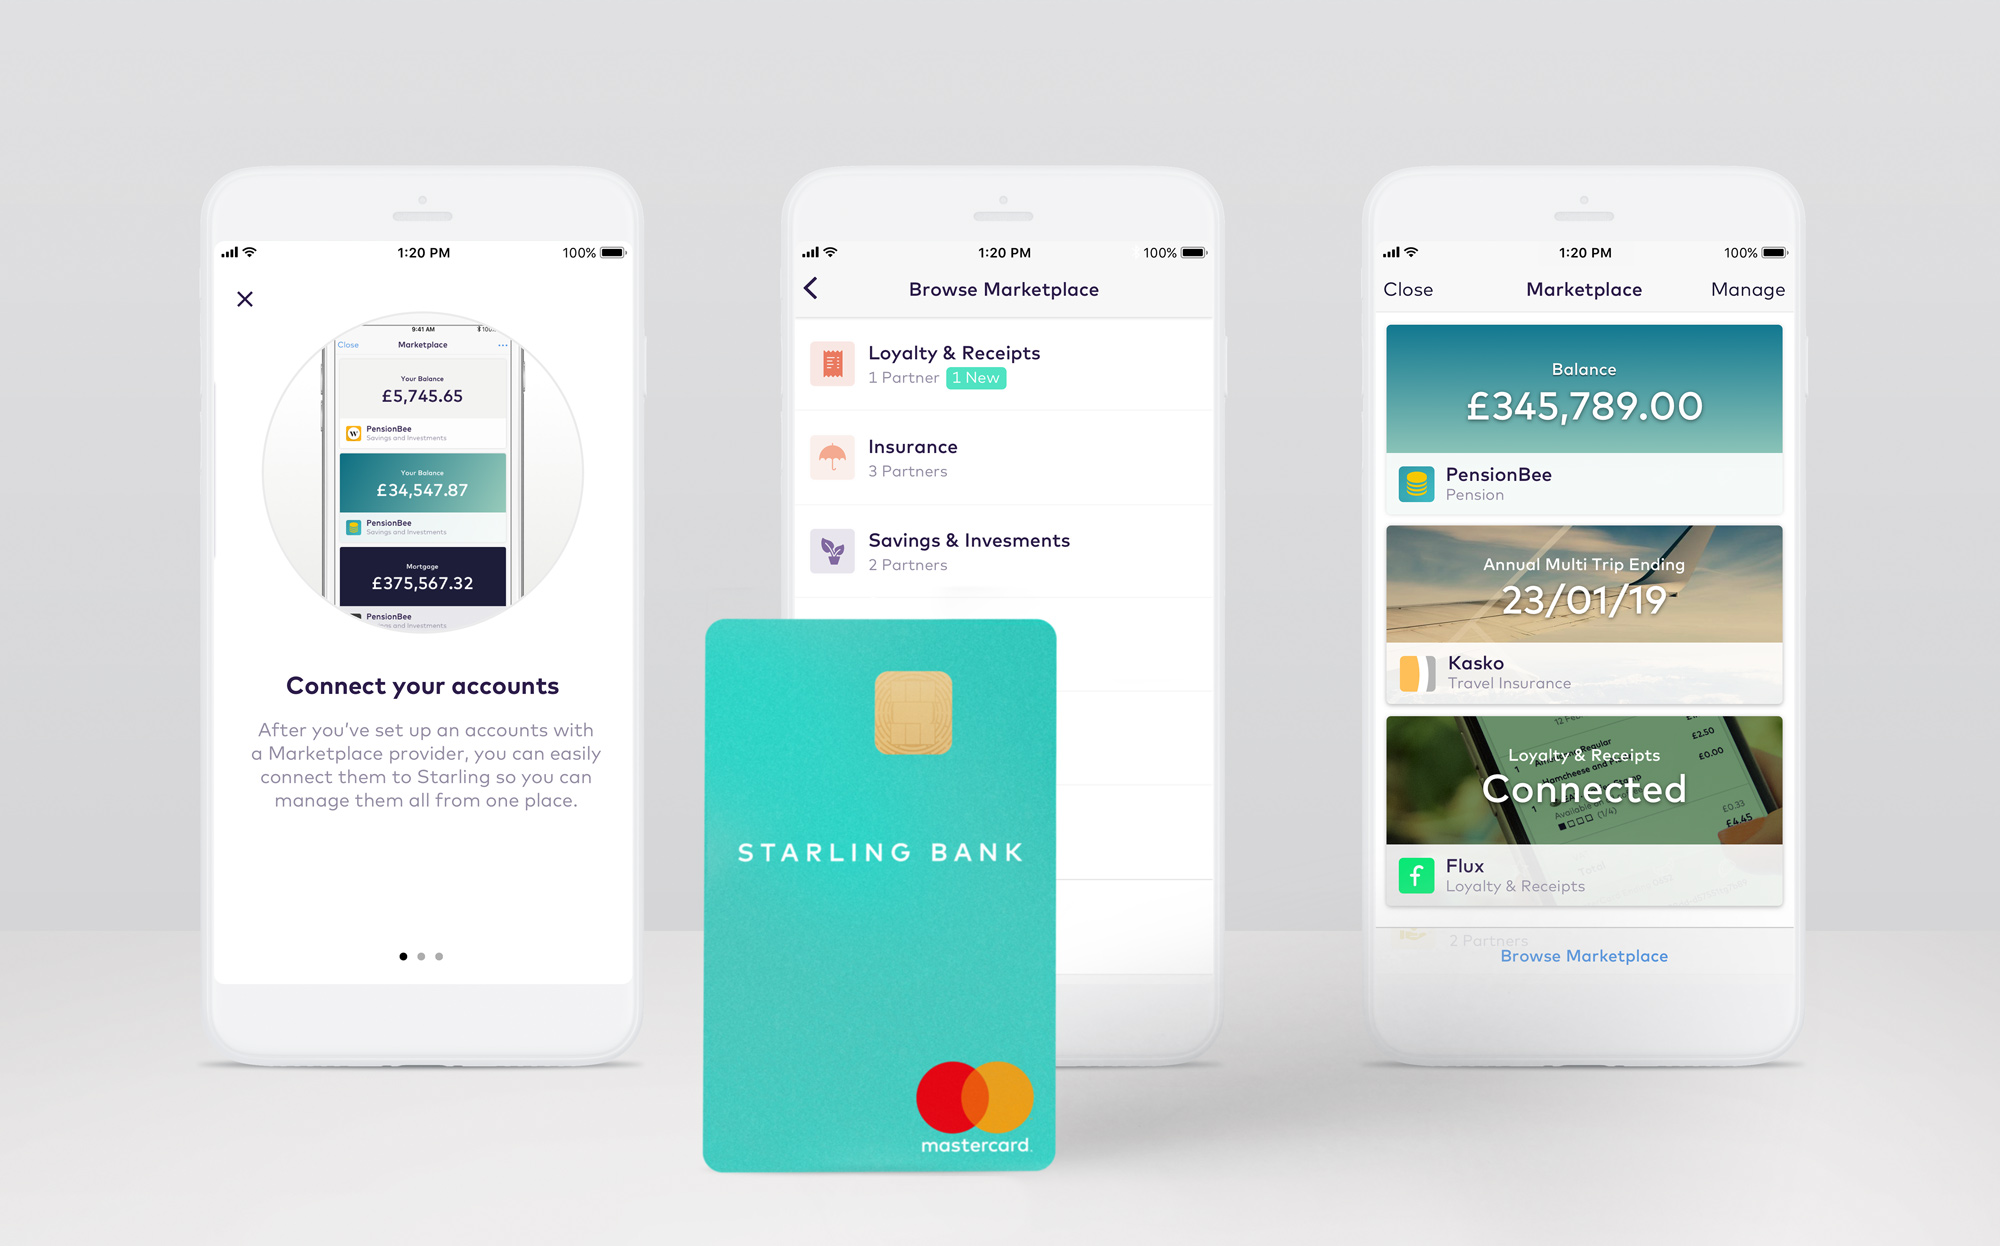 StarlingBank Marketplace 1 - Starling Bank joins forces with FreeAgent